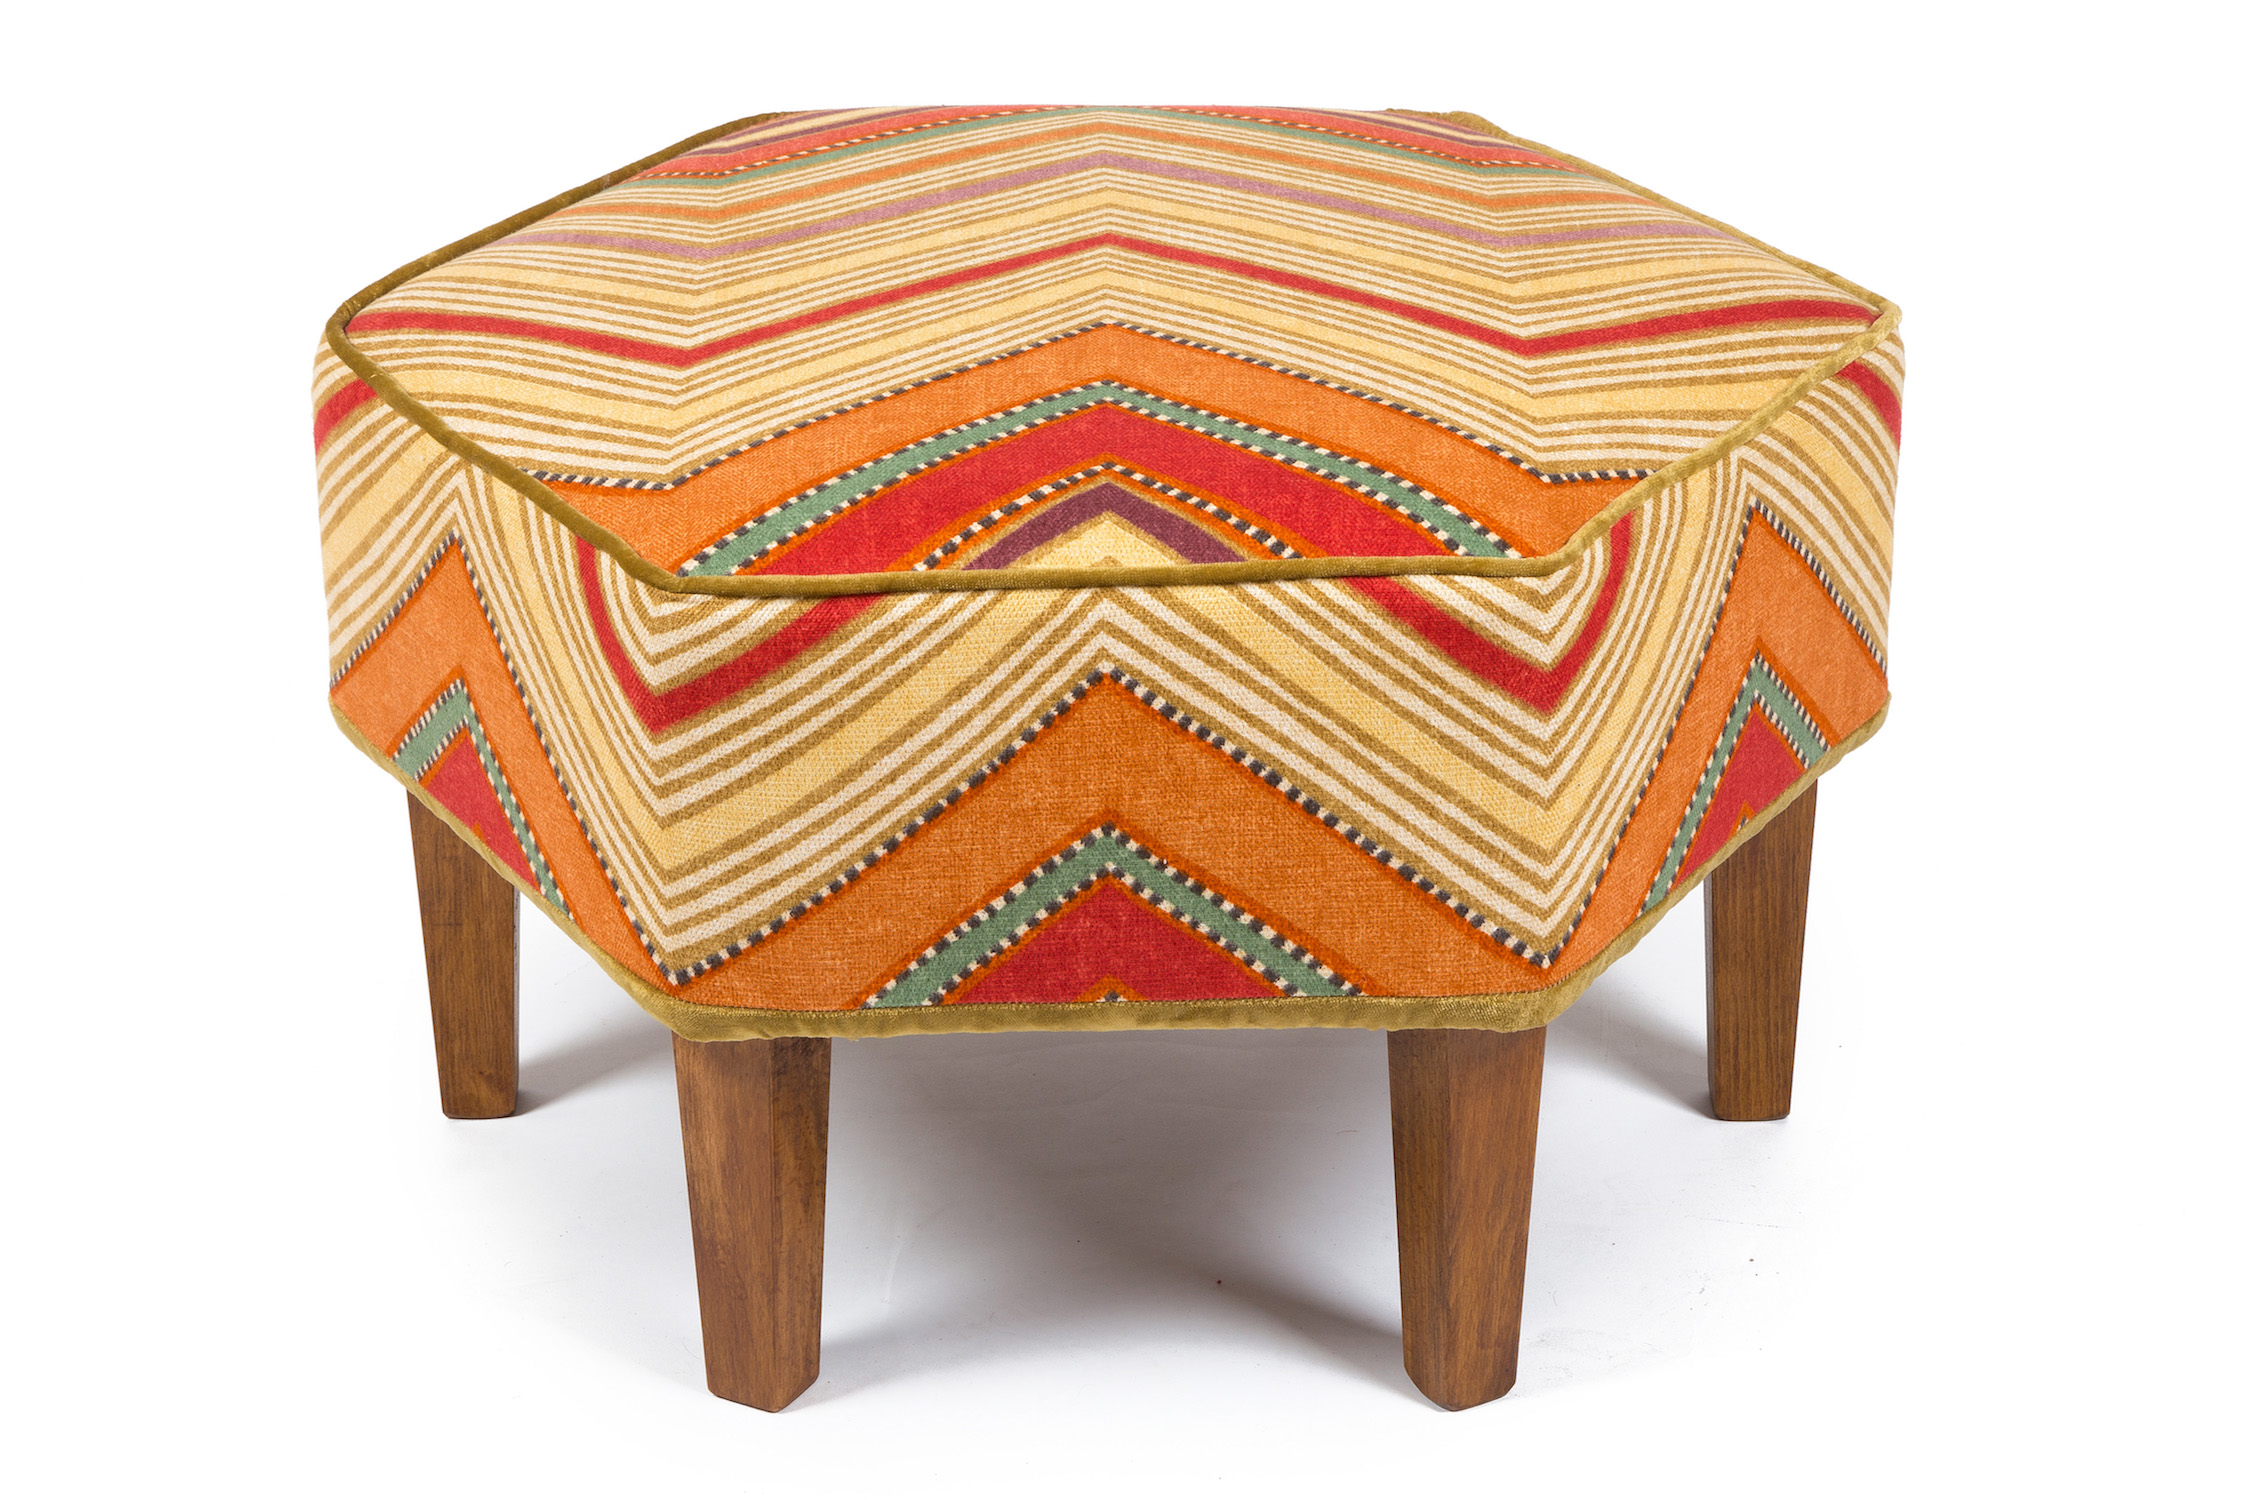 Hexagonal Bordered and Piped Footstool with Square Tapering Legs